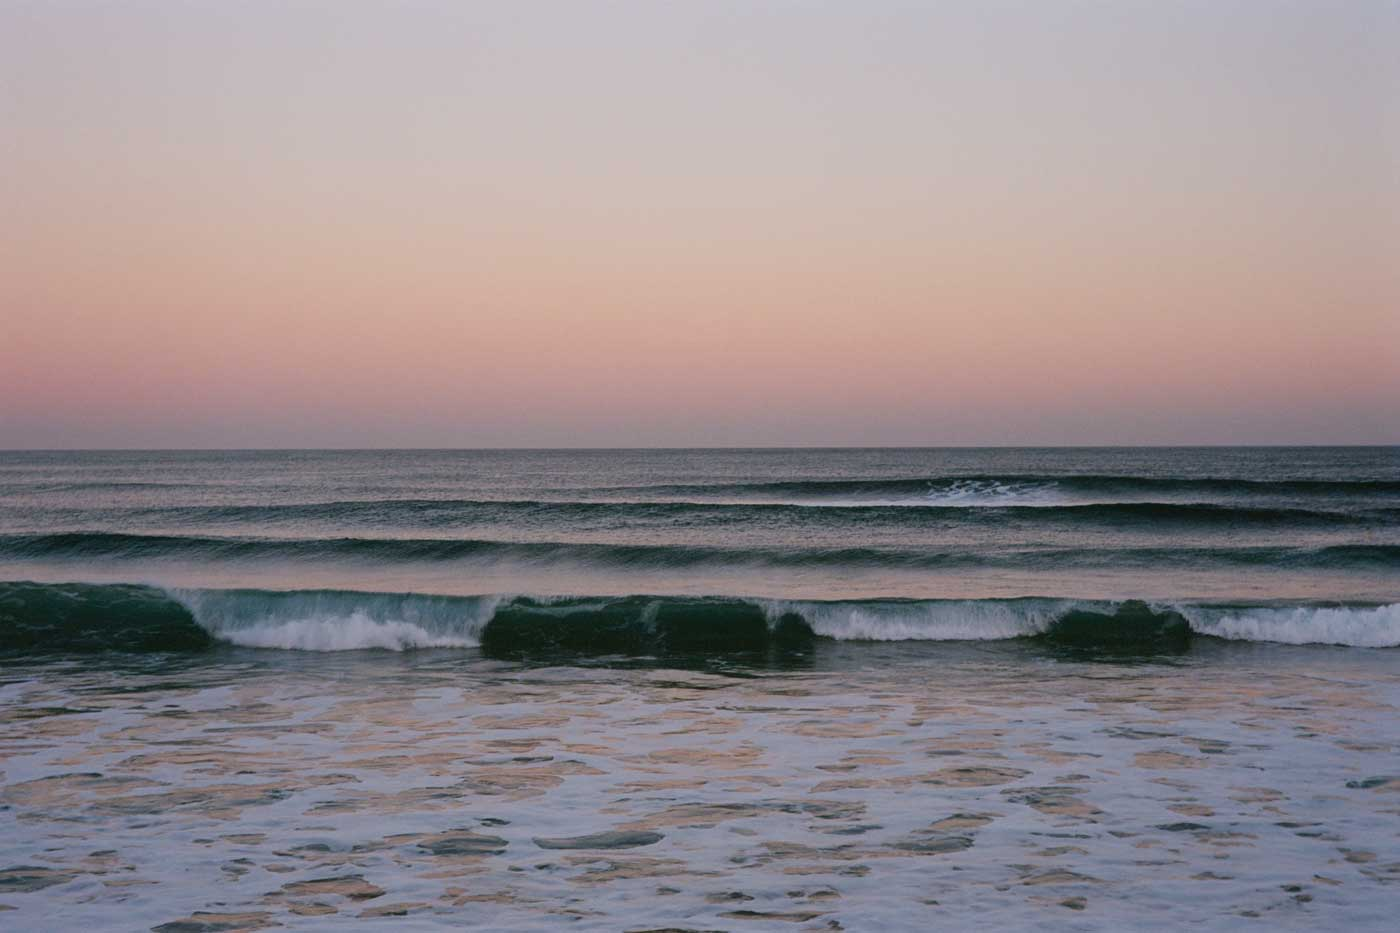 Leica-Summicron-50mm-50-f2-Rigid-Type-2-II-lens-review-kodak-ektar-100-phillip-island-sunset-view-waiting-for-penguin-cold-freezing-weather-pinkish-waves